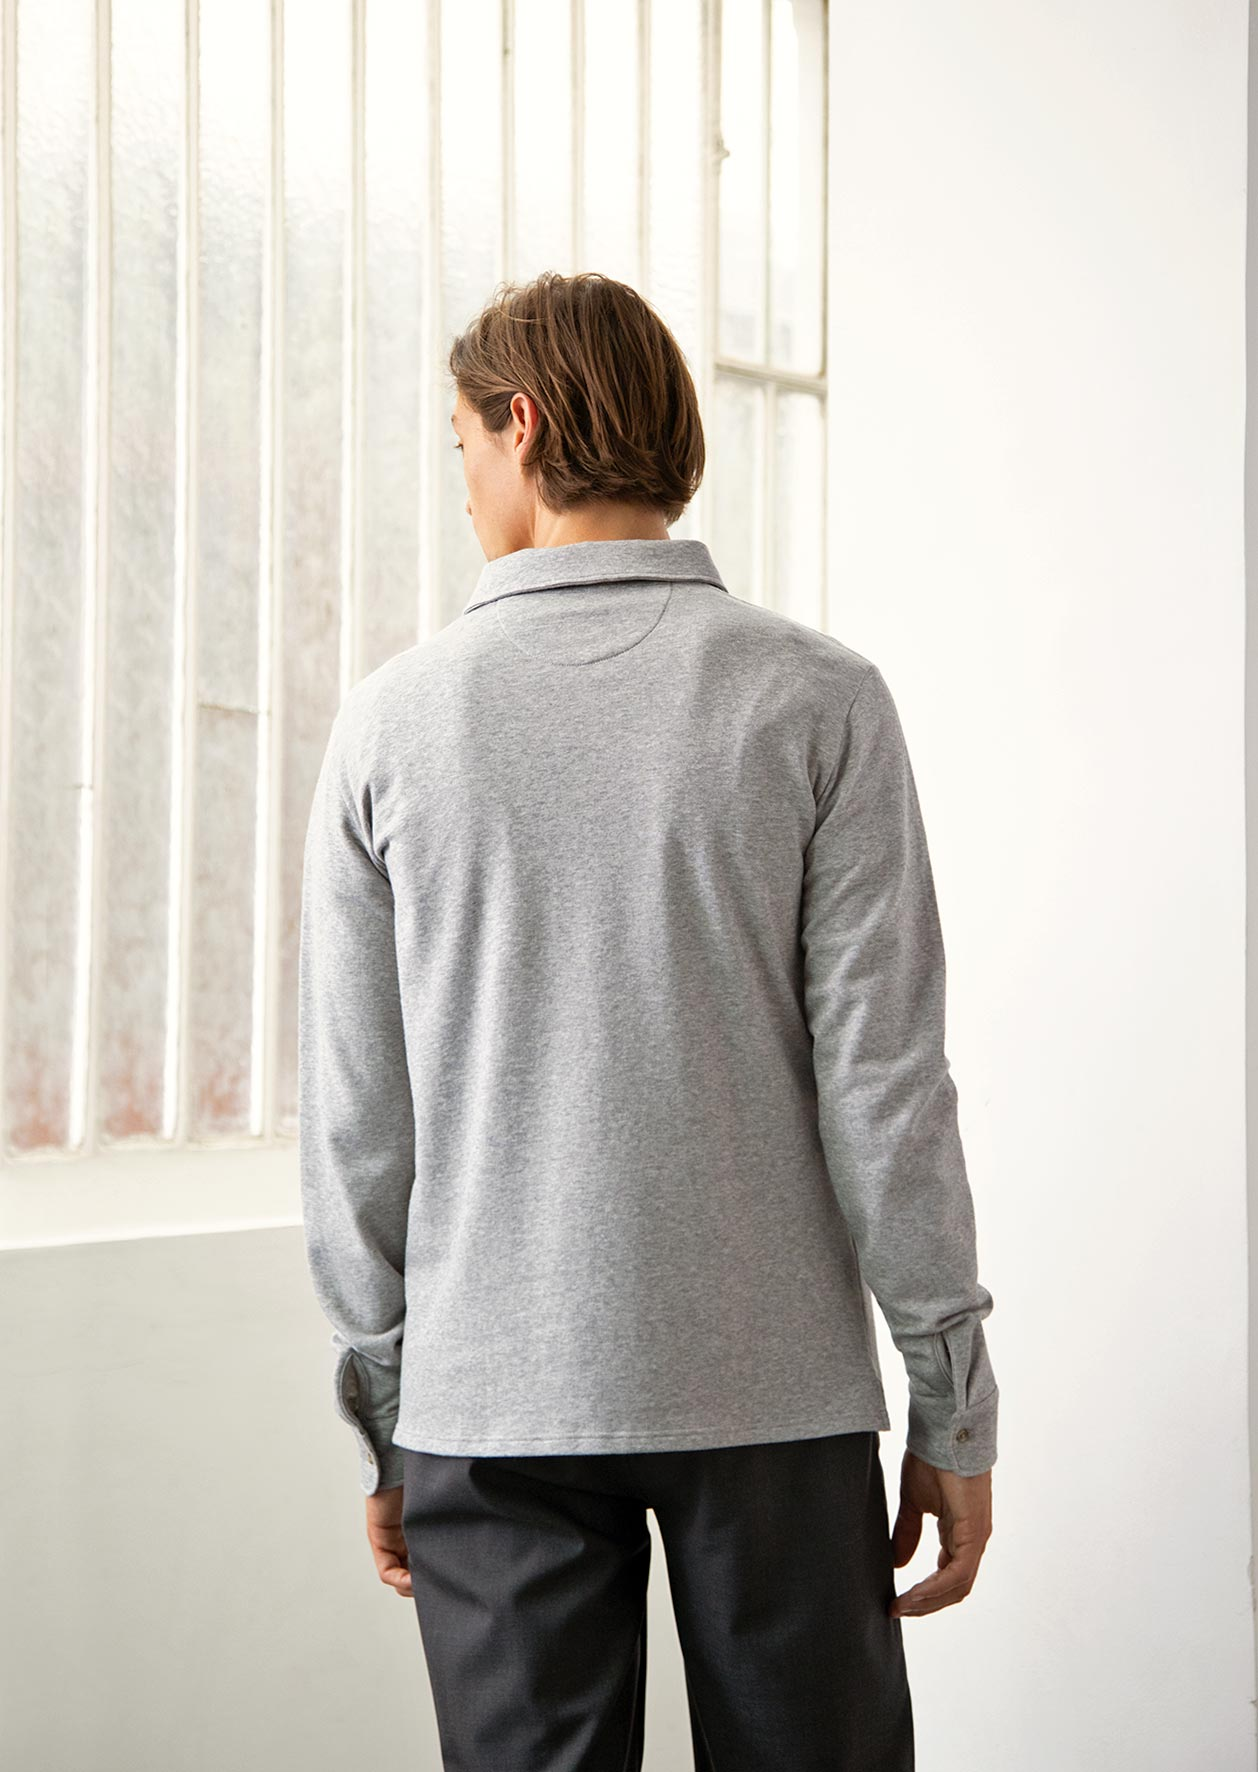 De Bonne Facture - Long sleeve polo shirt - Organic cotton jersey - Heathered grey